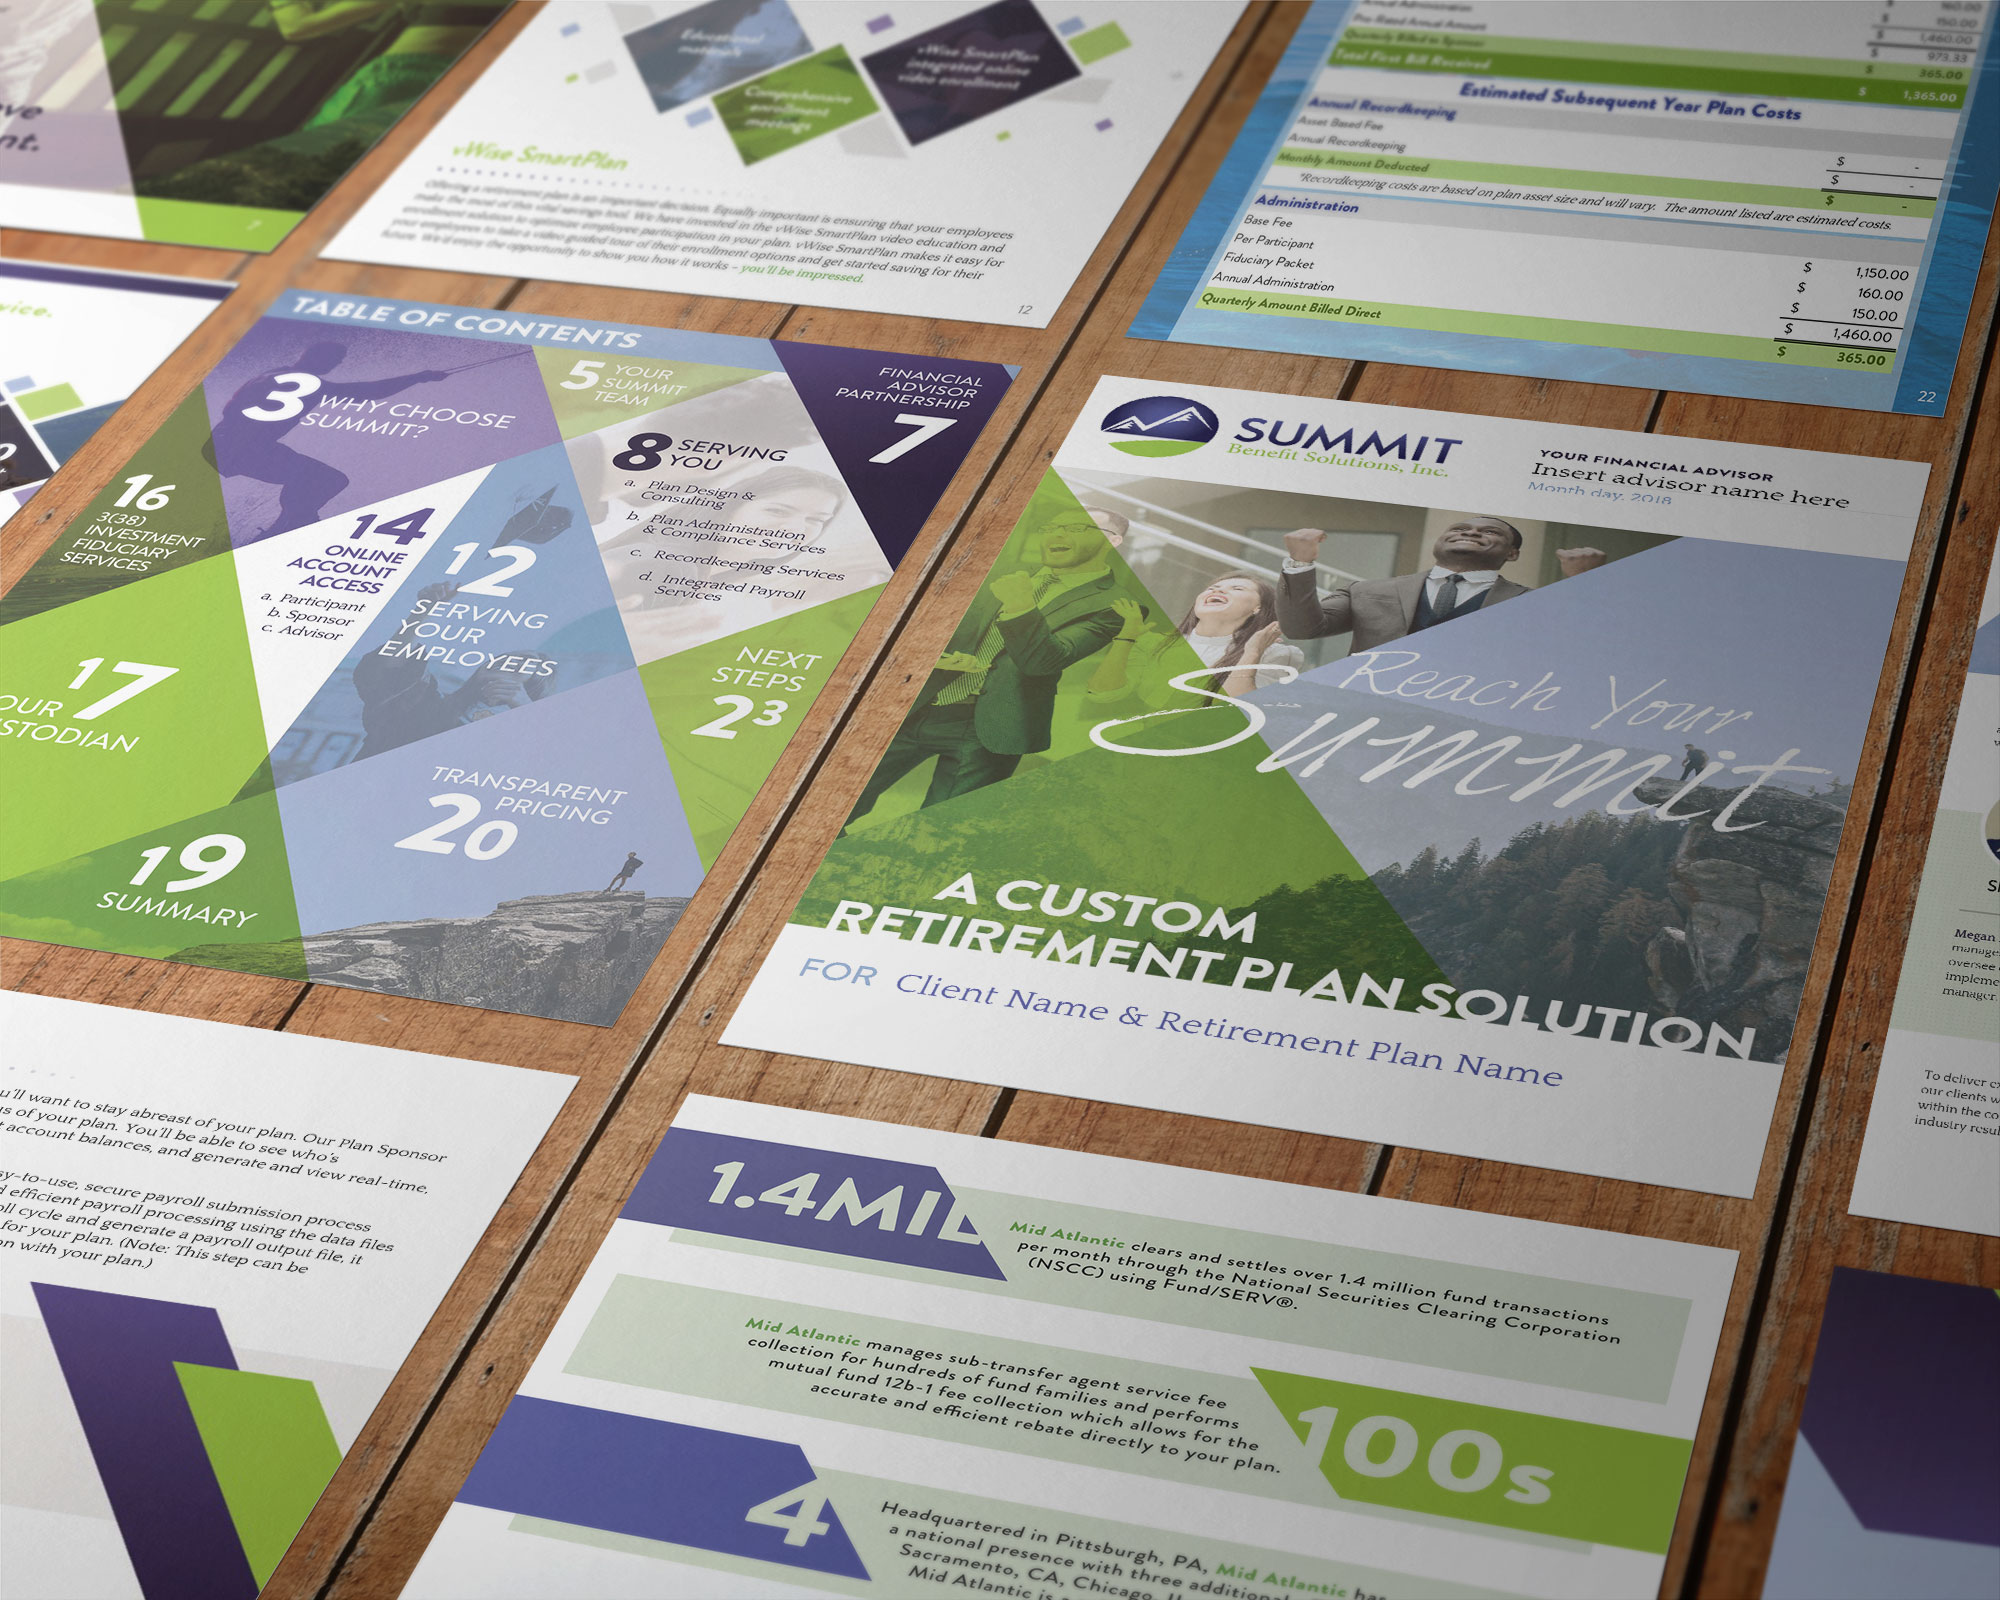 10 custom proposal page designs all laid out on a table